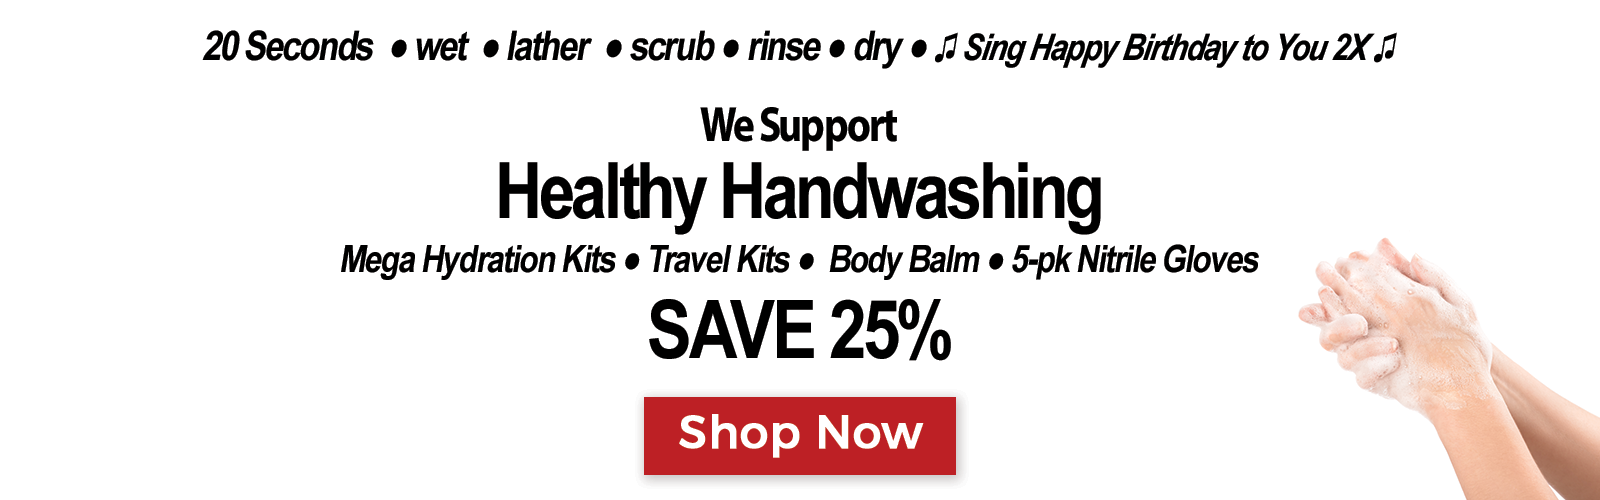 healthy-handwashing-banner.png